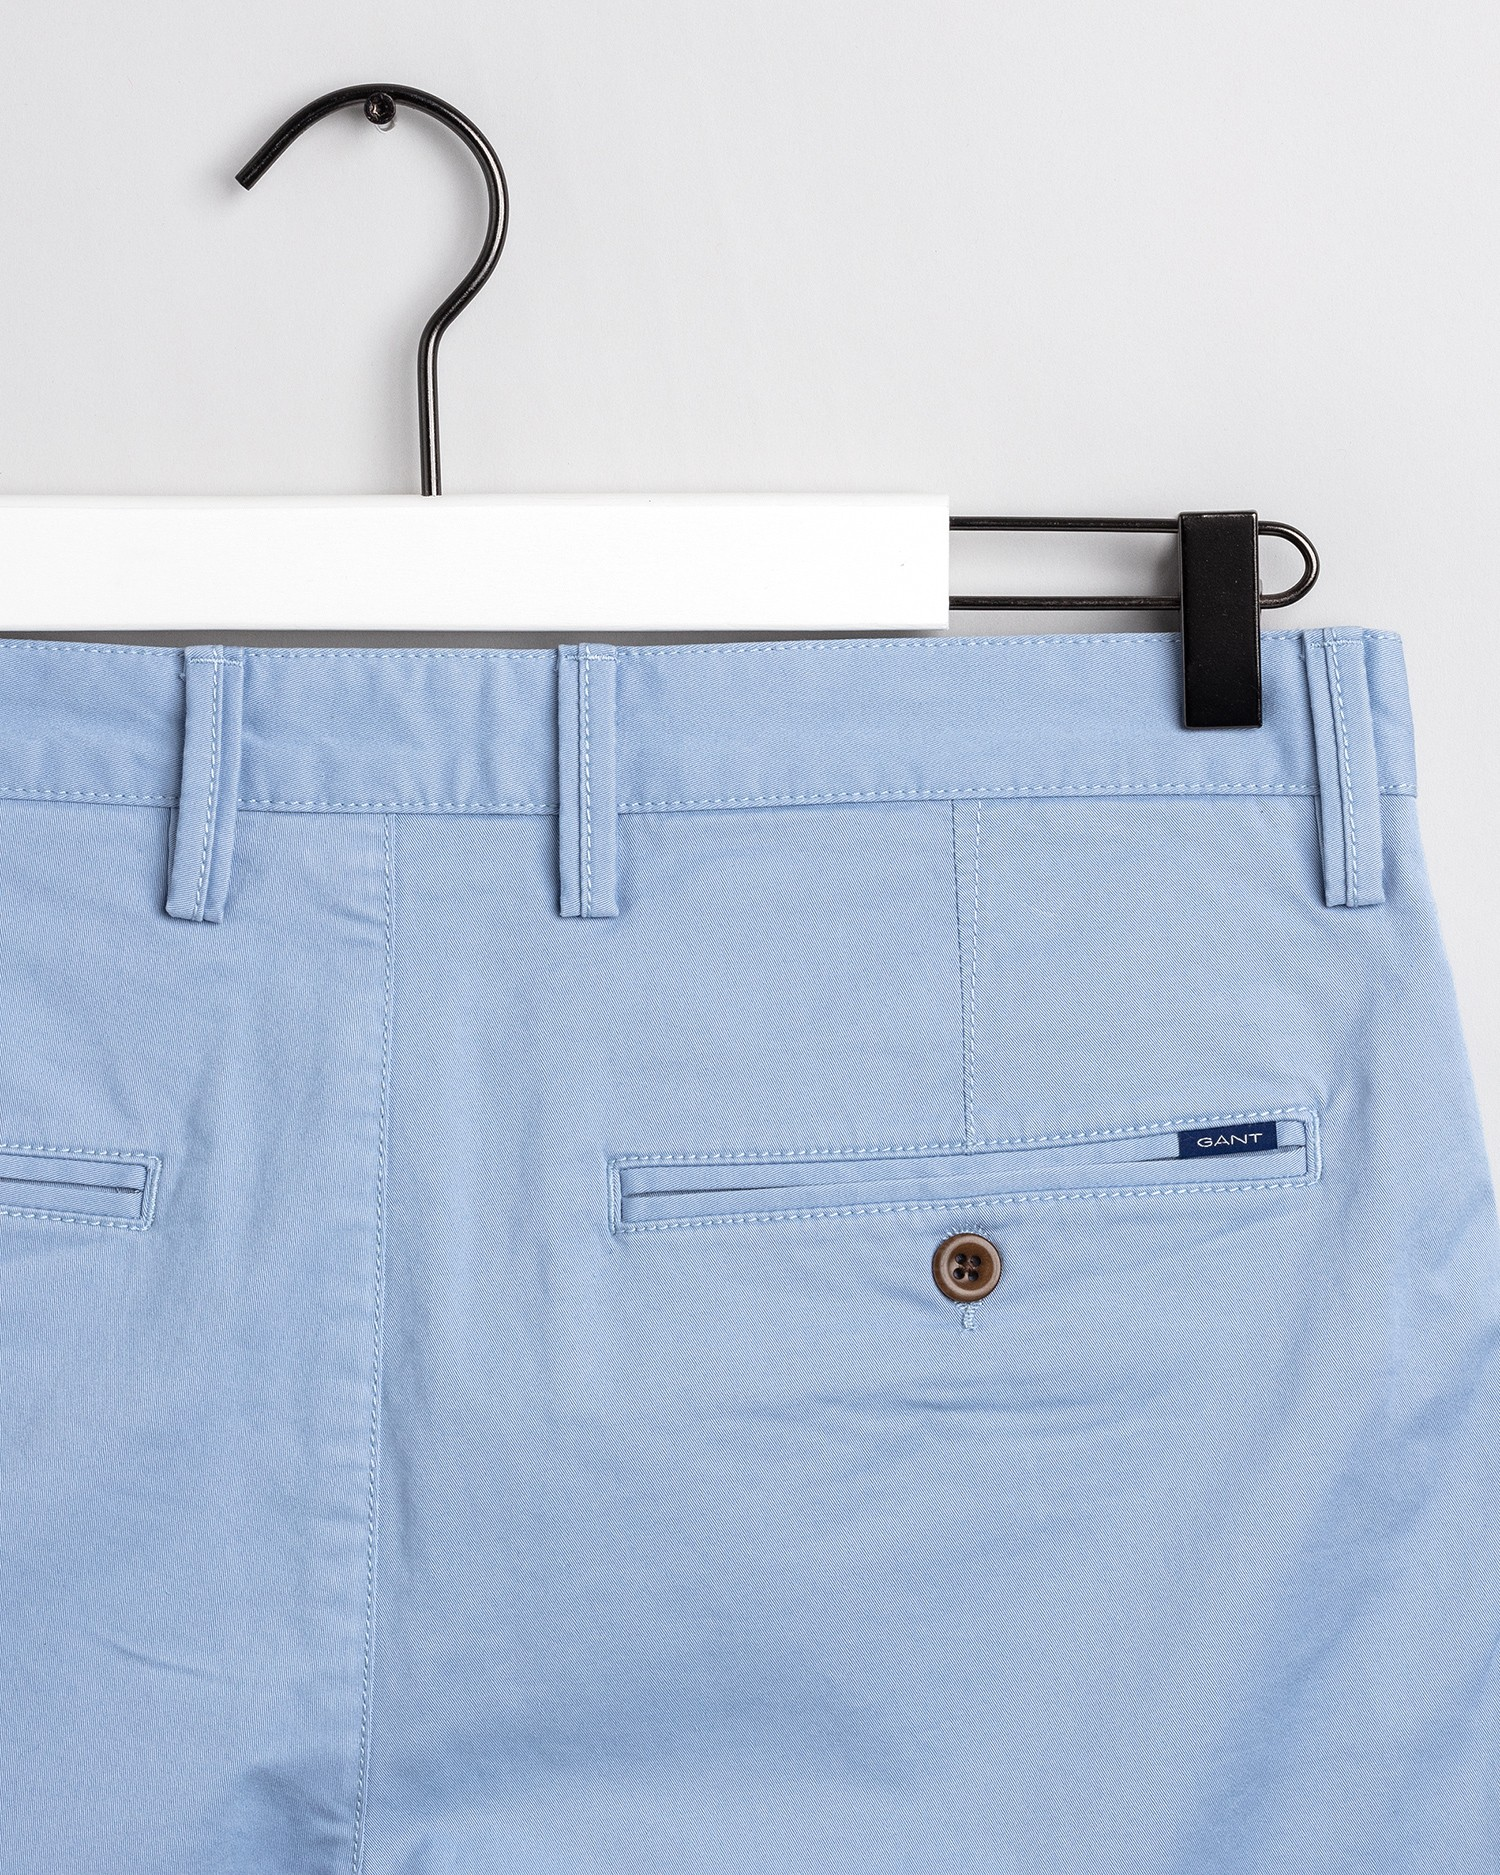 GANT Men's Blue Bermuda Shorts - 20007